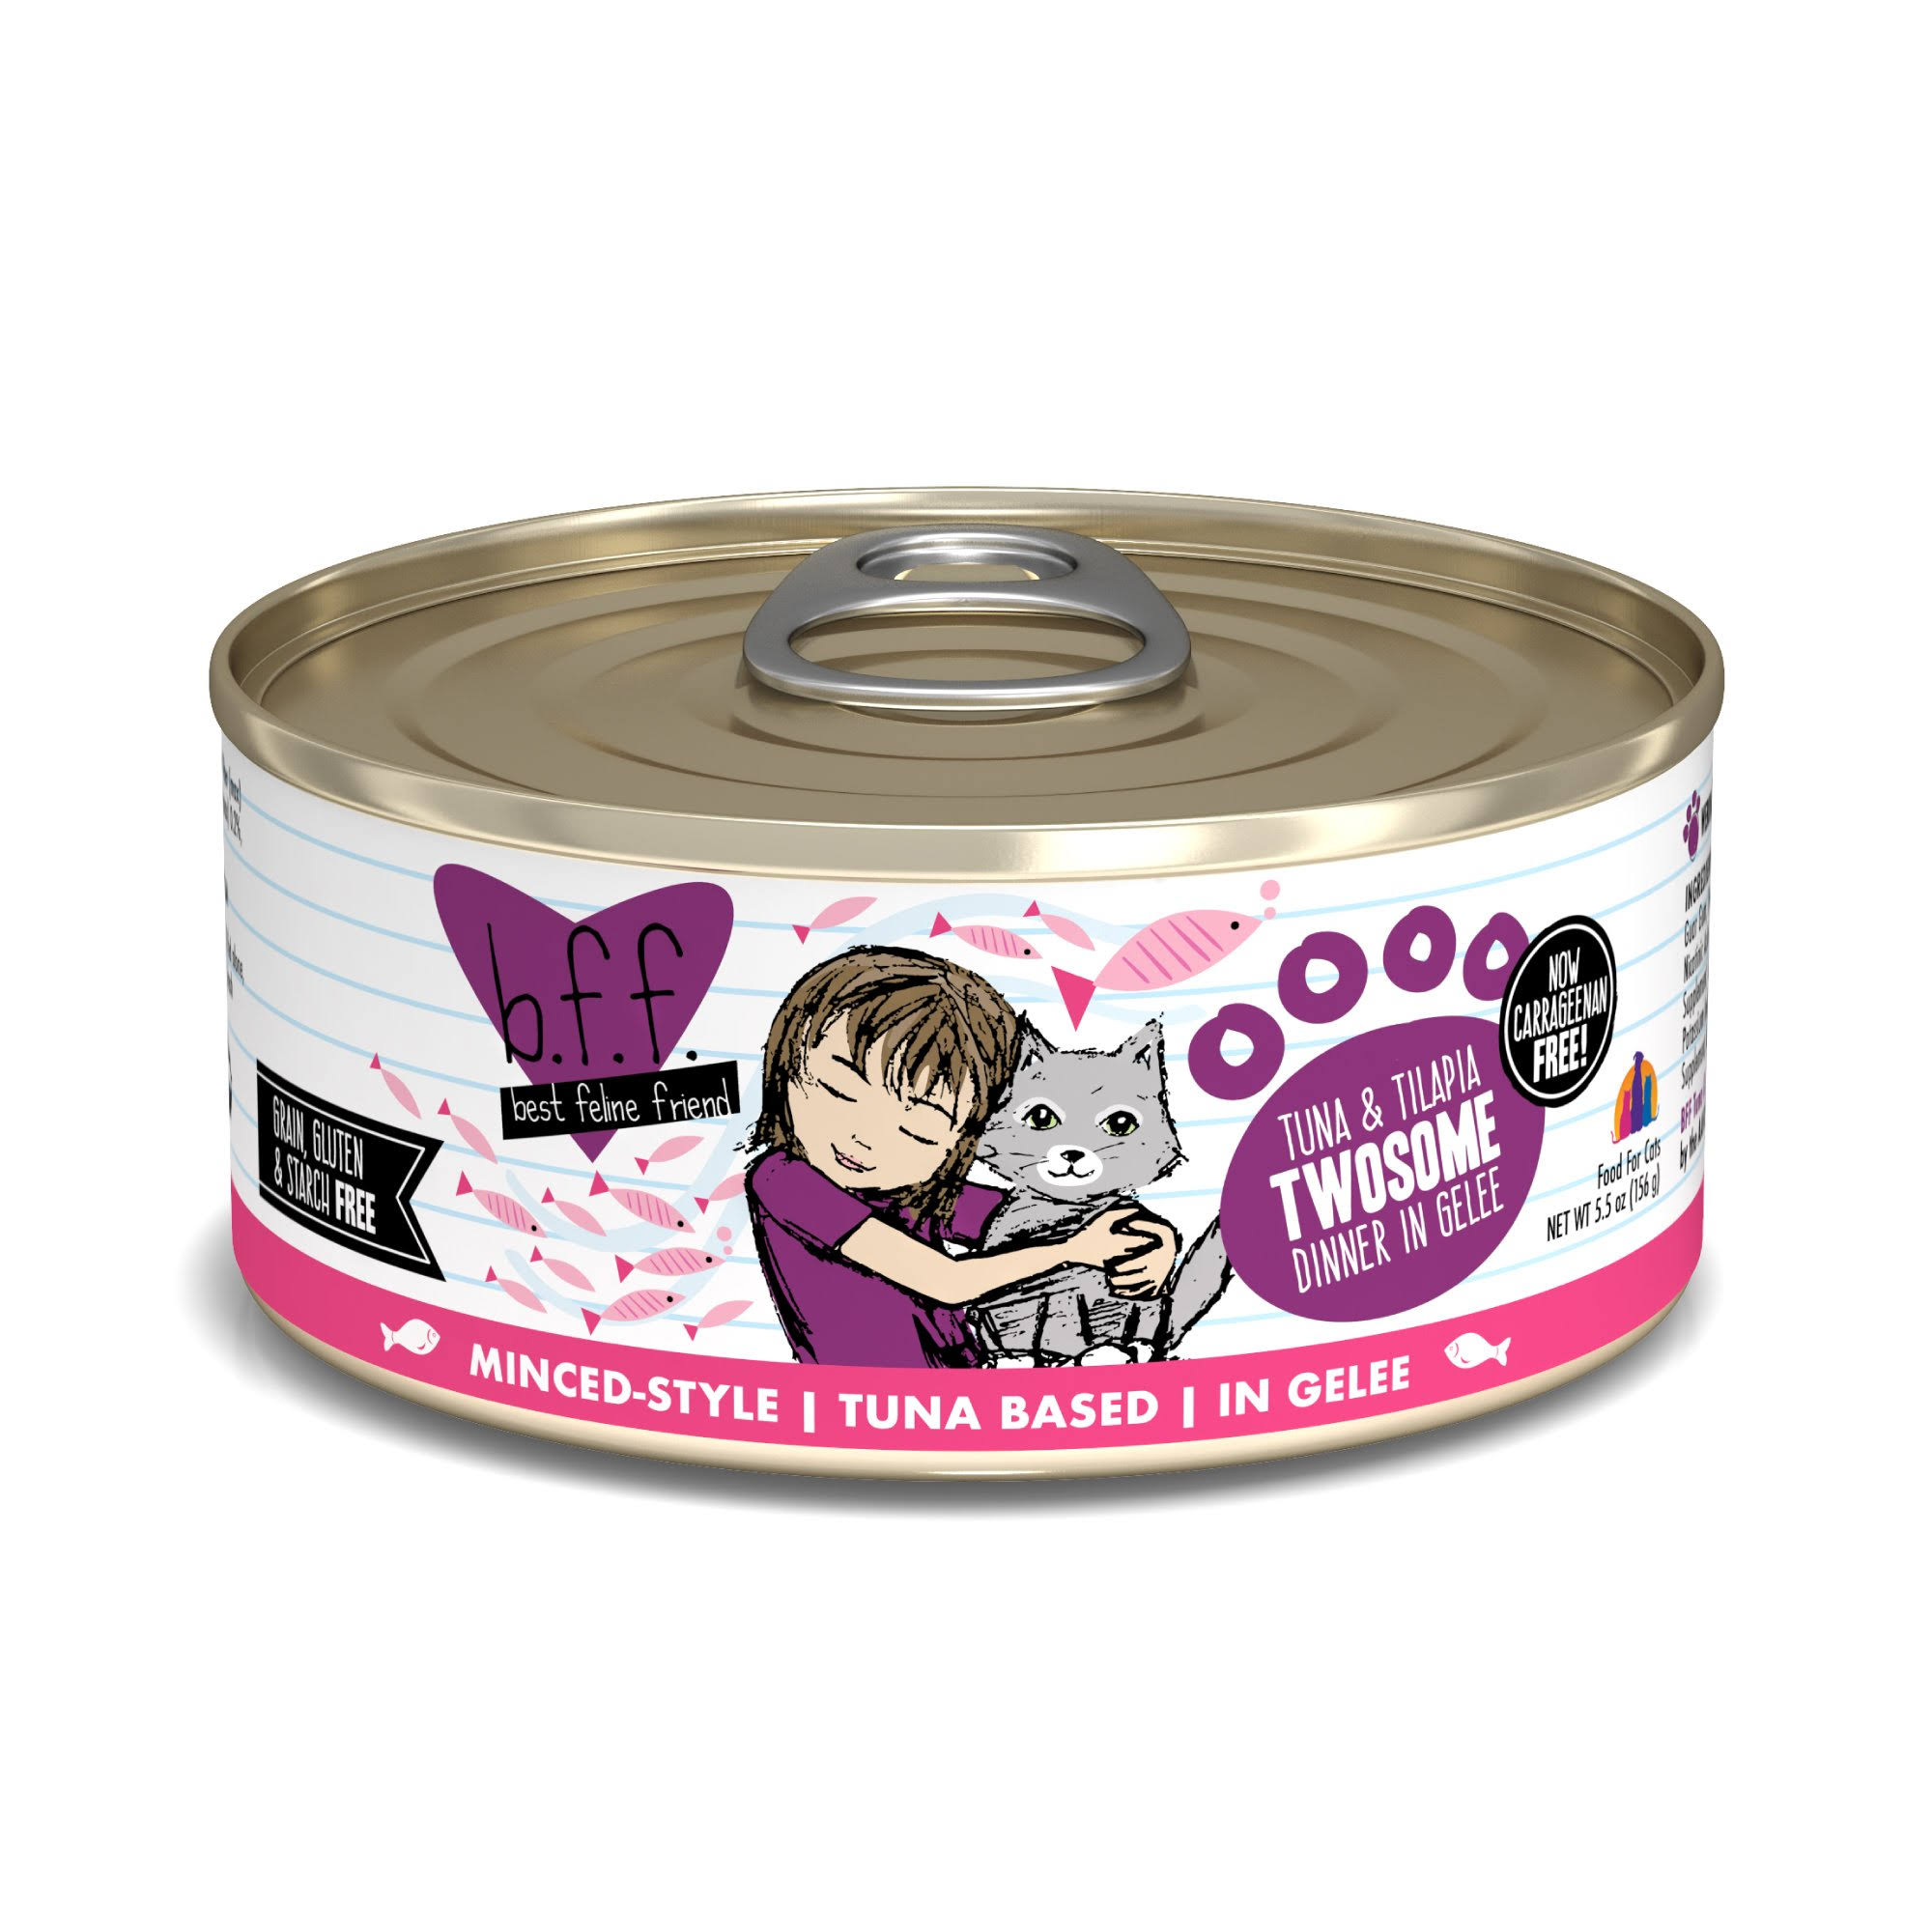 Best Feline Friend Cat Food - Tuna & Tilapia